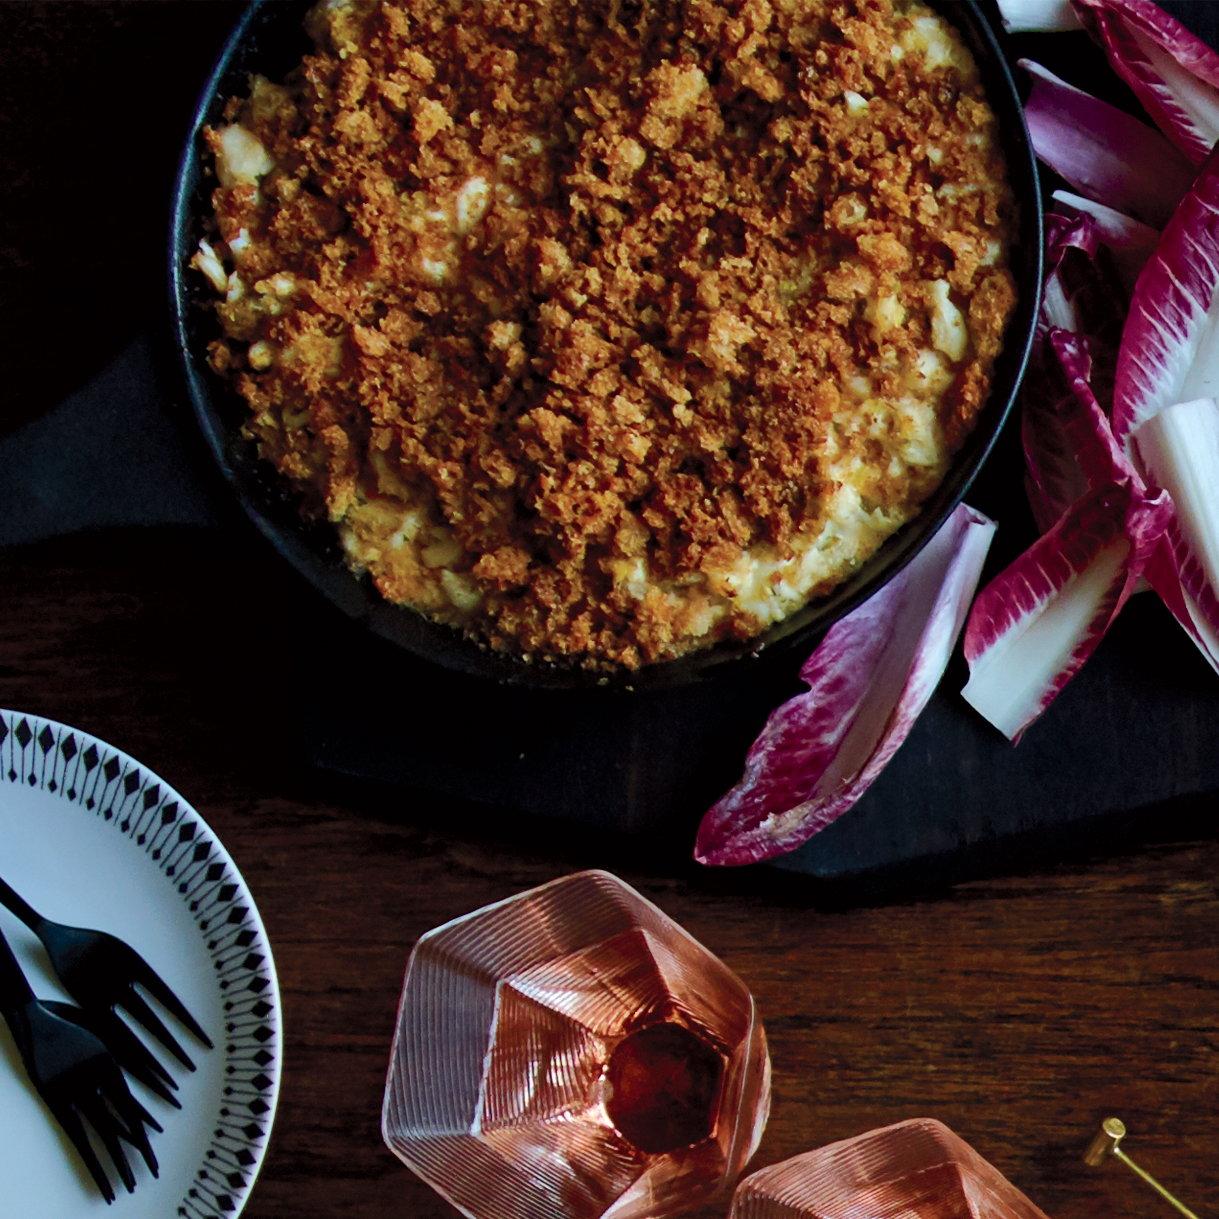 New England–Style Crab Dip with Brown-Butter Crumbs